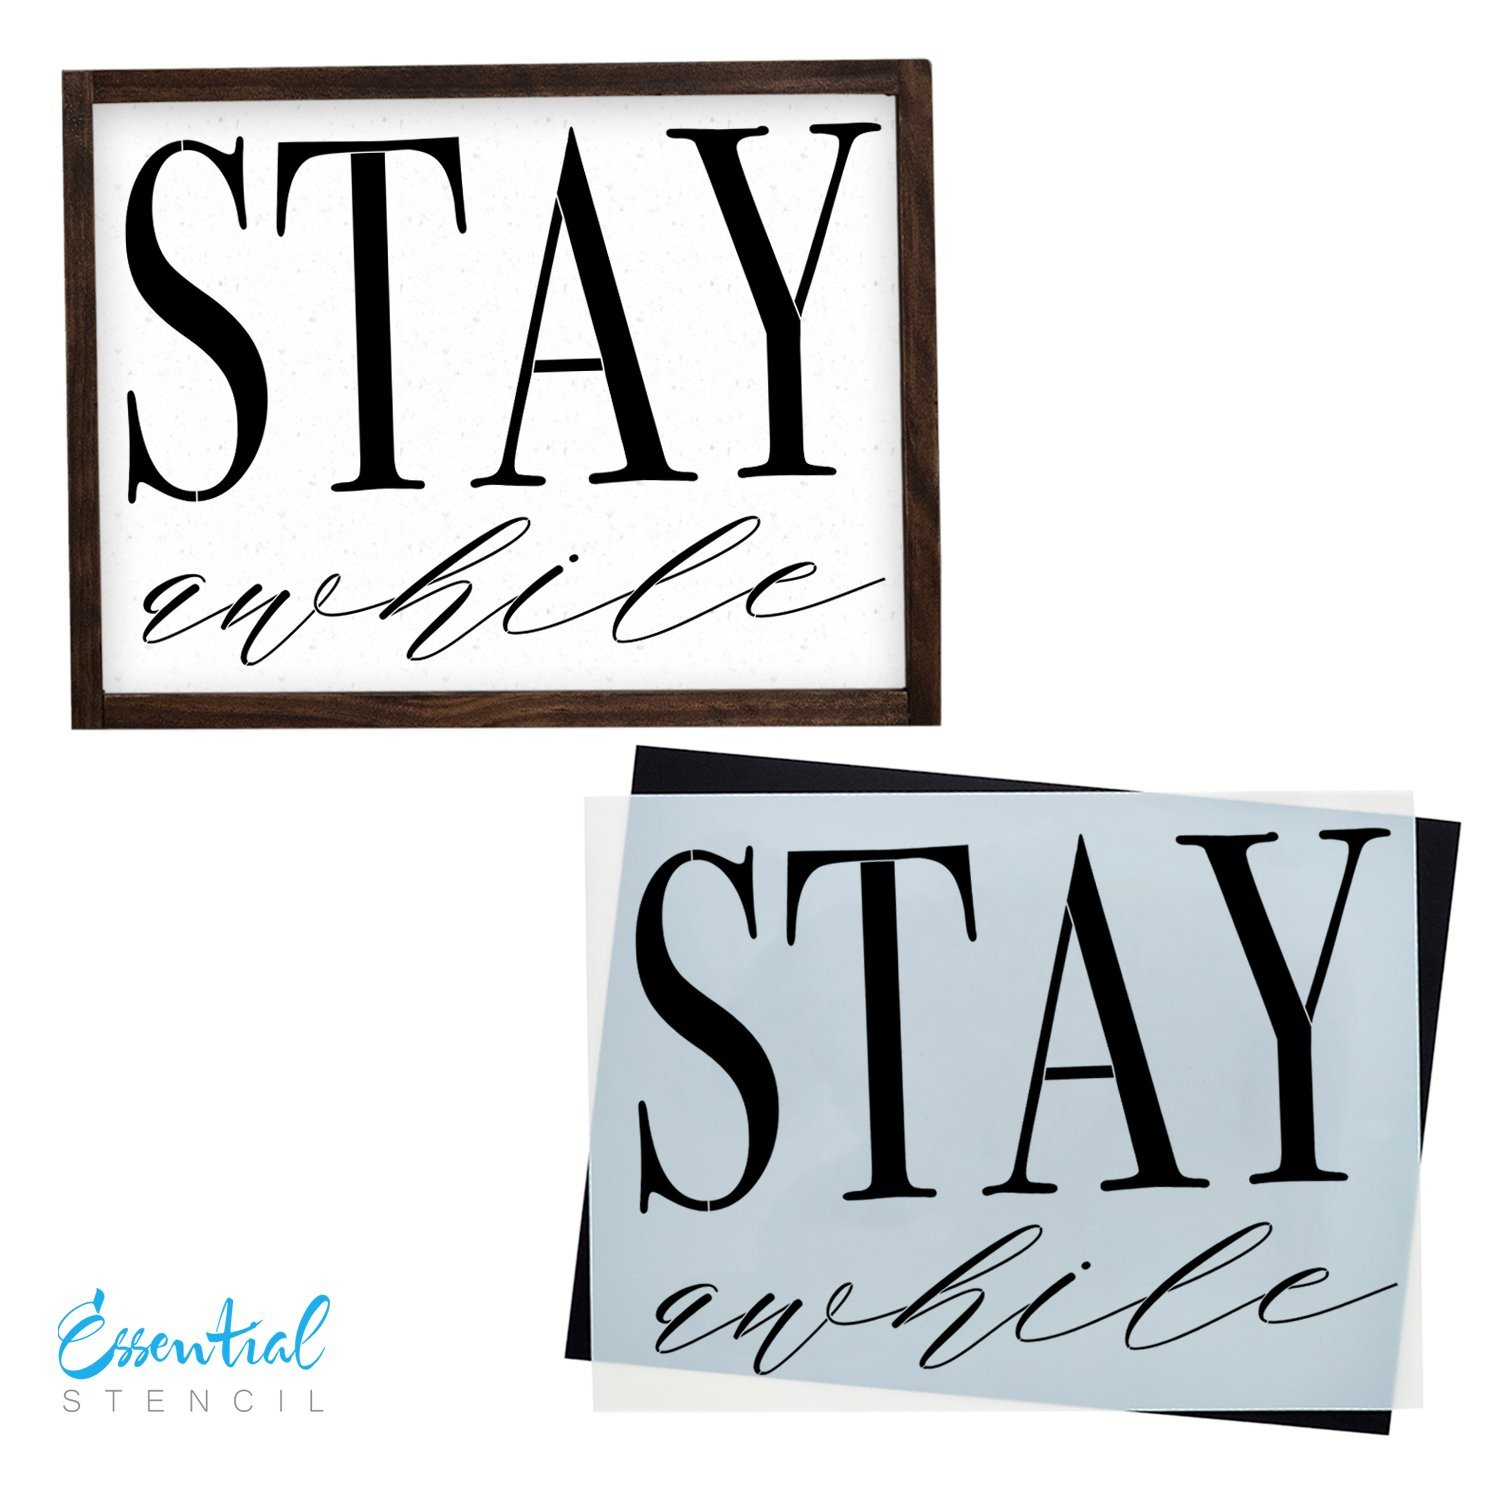 Stay Awhile Sign Stencil | Perfect for Painting On Wood, DIY French Country Home Decor Calligraphy Signs, Rustic Decor for Farmhouse, Fixer Upper, Joanna Gaines, Magnolia Style Essential Stencil 4336893785